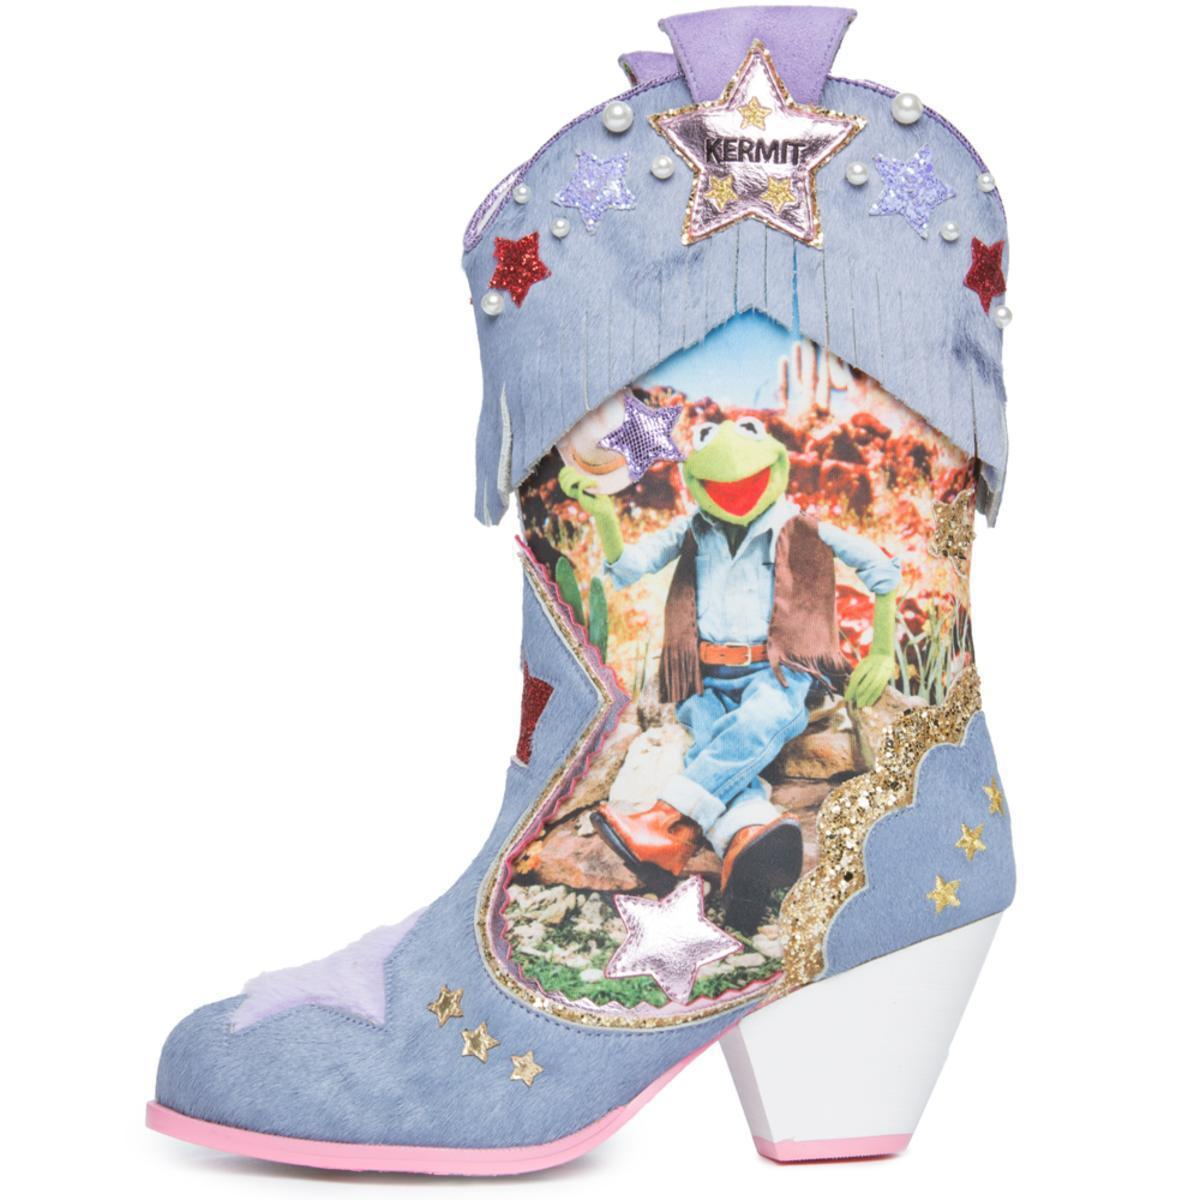 Muppets X She's Hip He's Hop Boot